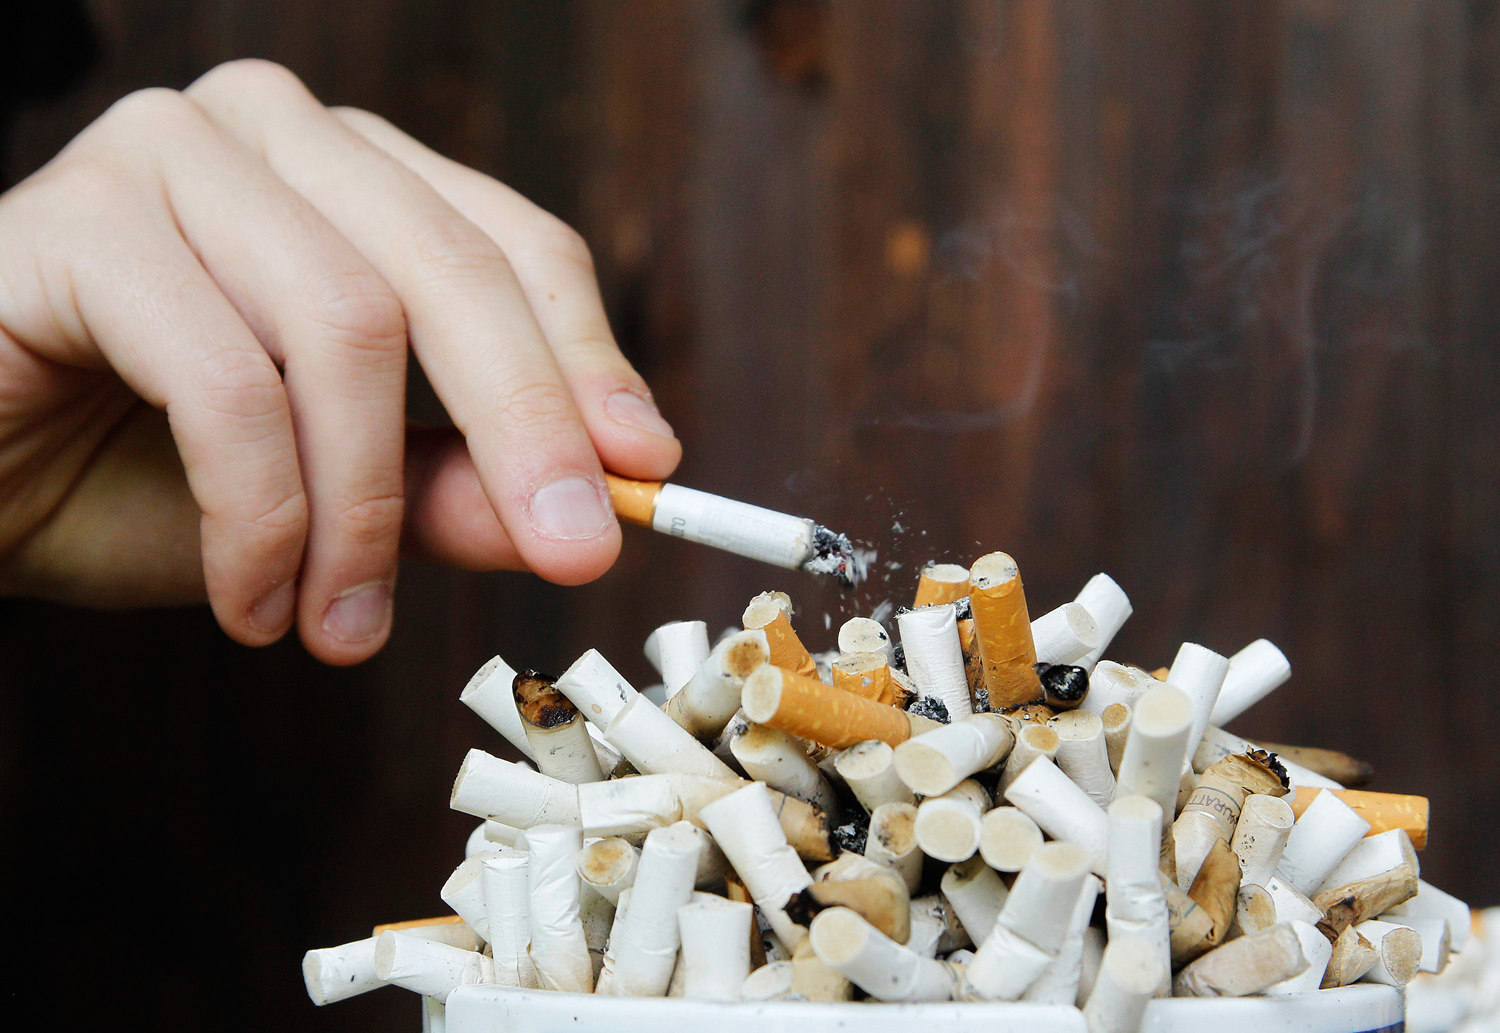 A man taps ashes off his cigarette into an ashtray filled with cigarette butts on a table in Ljubljana October 17, 2012.  REUTERS/Srdjan Zivulovic (SL...